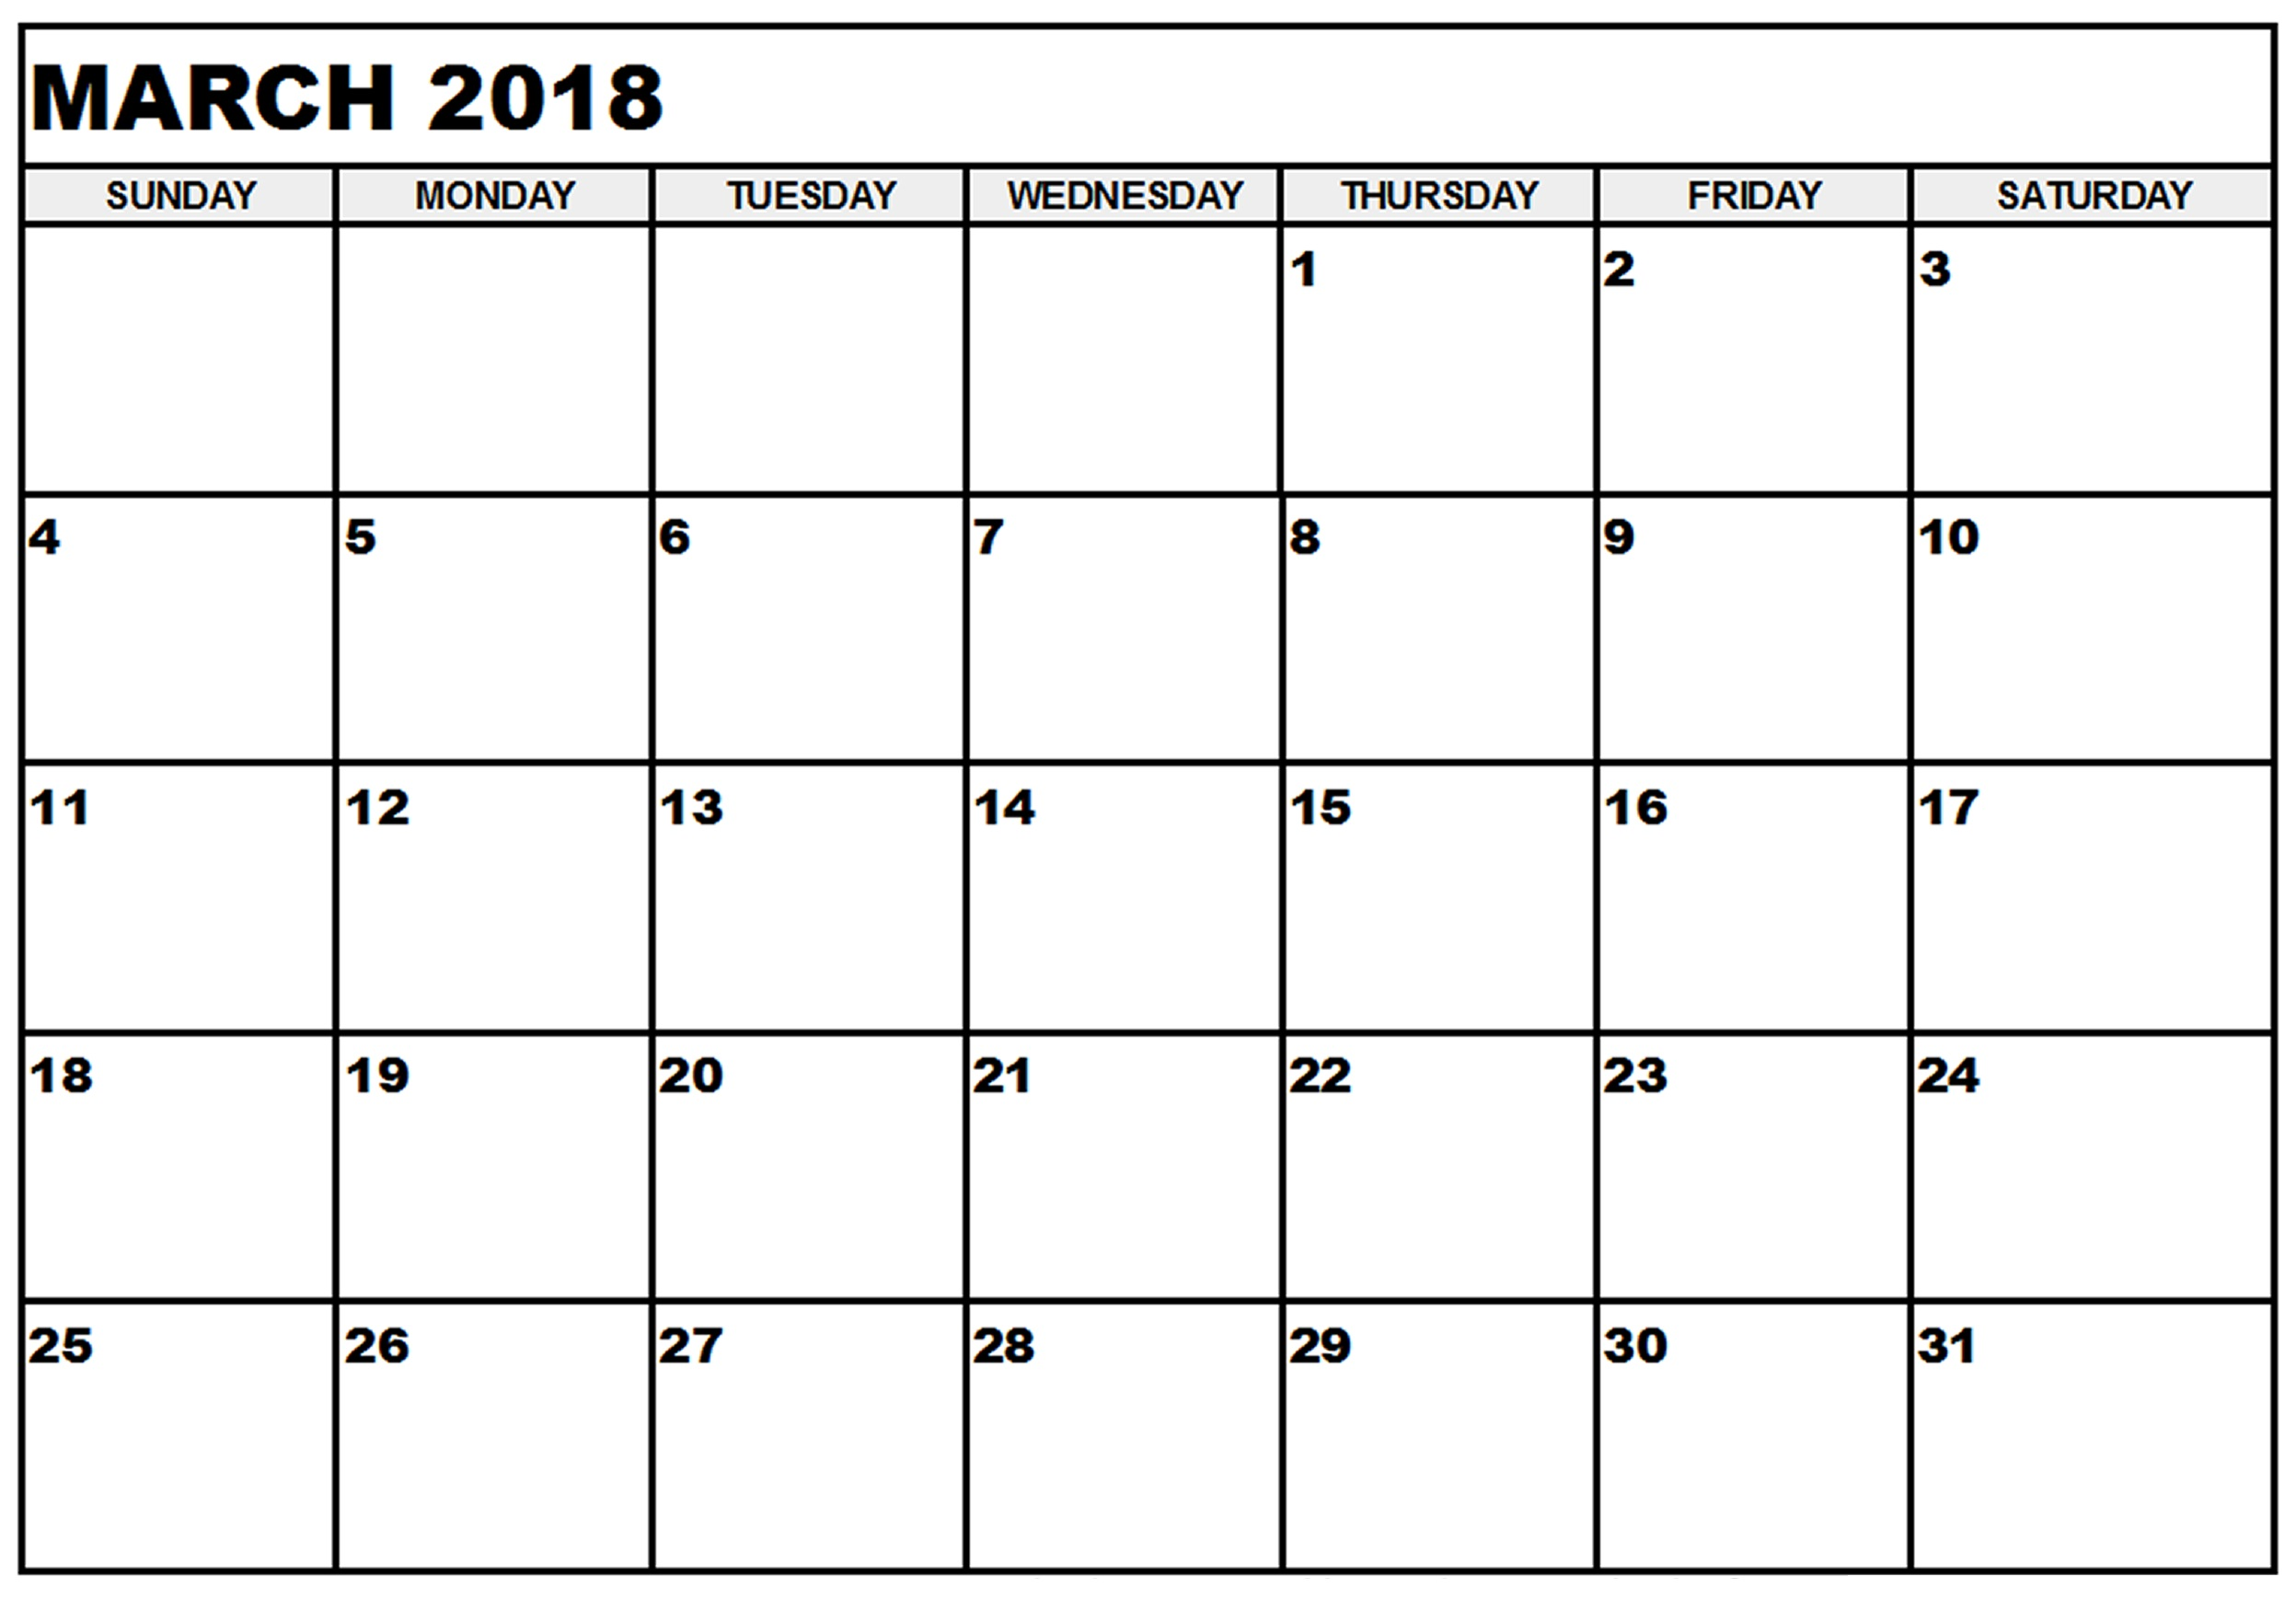 March 2018 Monthly Calendar Template